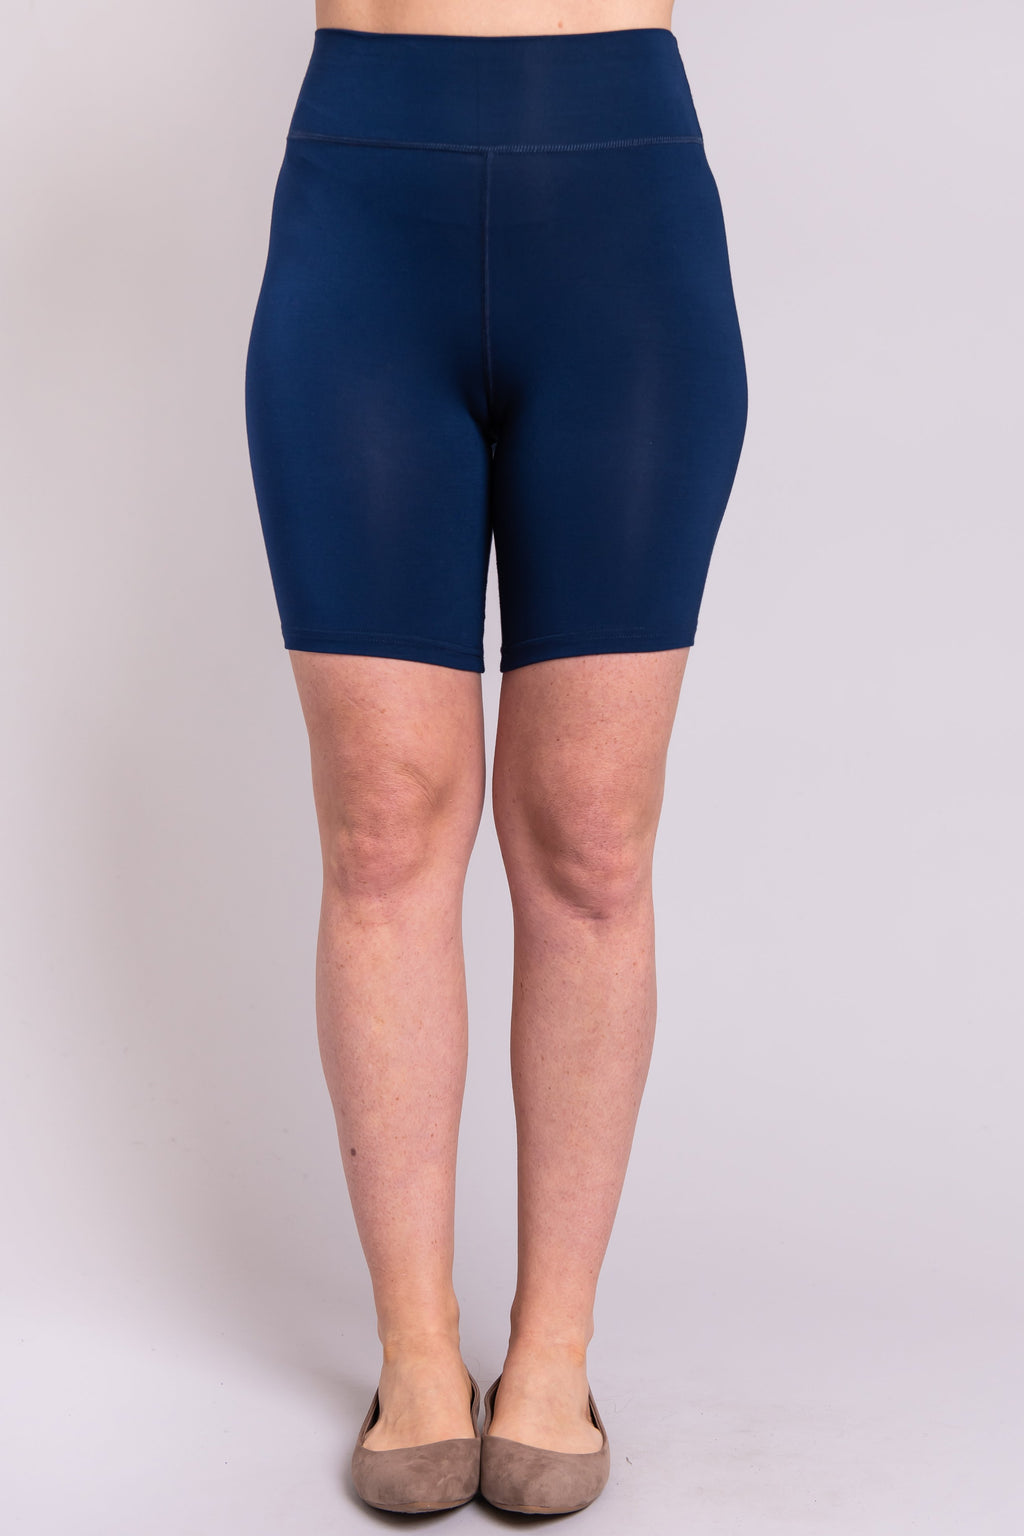 Hallie Undershorts, Indigo - Blue Sky Clothing Co